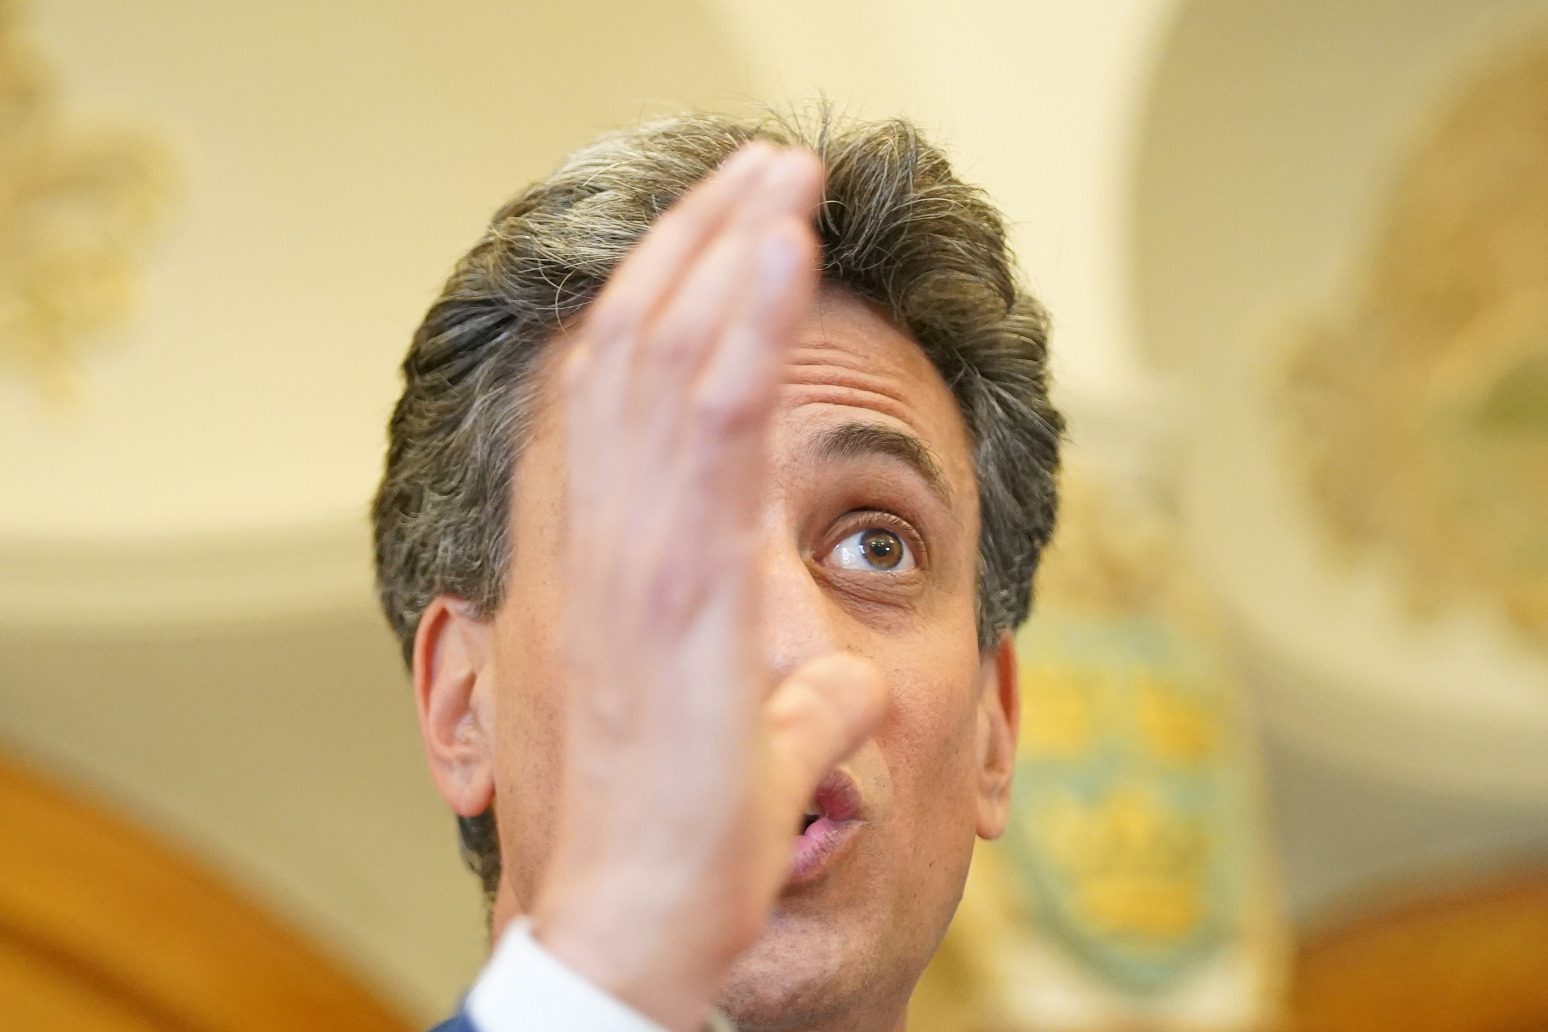 Ed Miliband has urged the Government to take action on credible climate transition plans